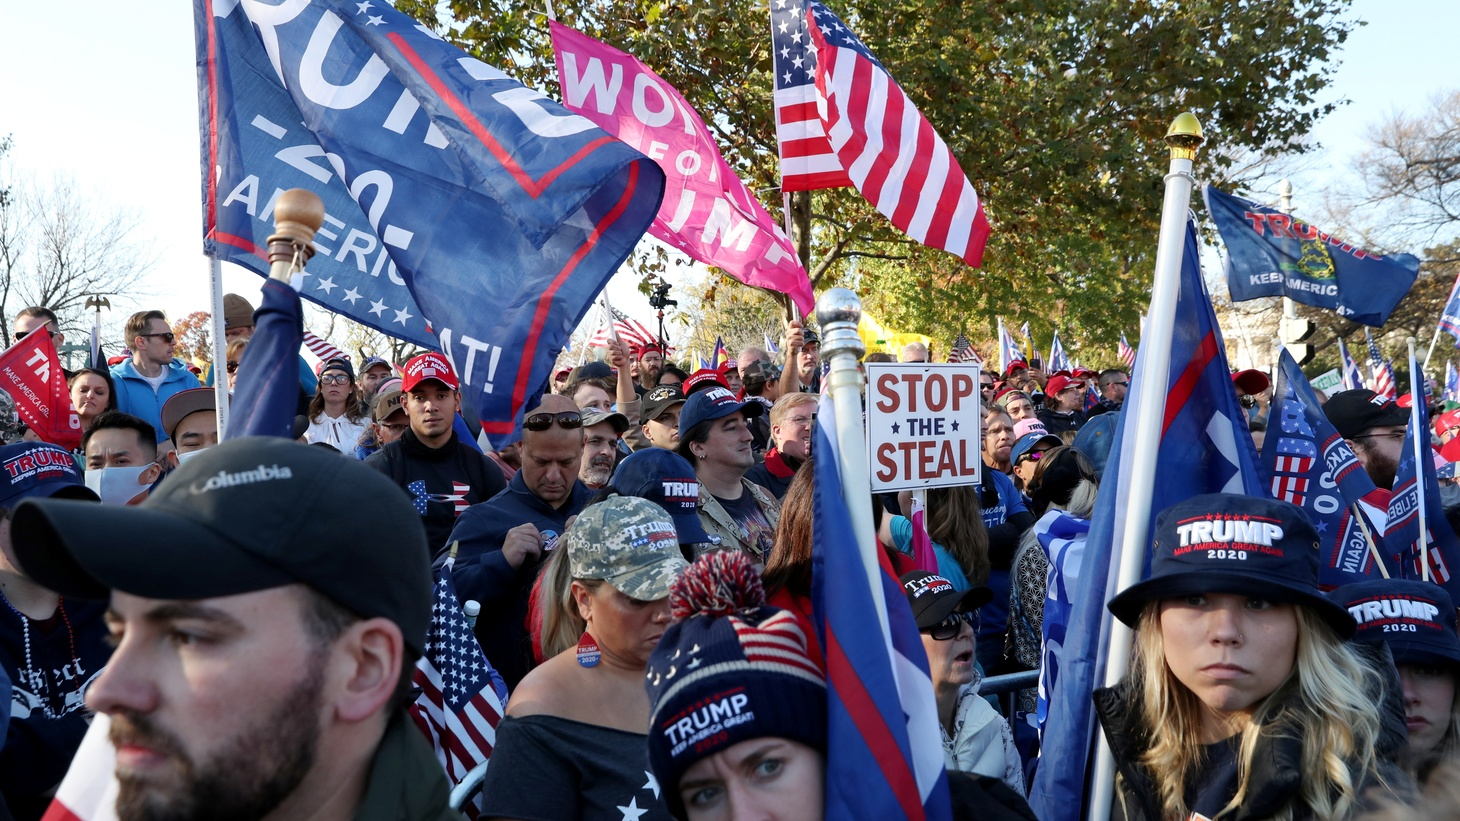 People rally outside of the U.S. Supreme Court in support of U.S. President Trump in Washington, U.S., November 14, 2020. Picture taken November 14, 2020.